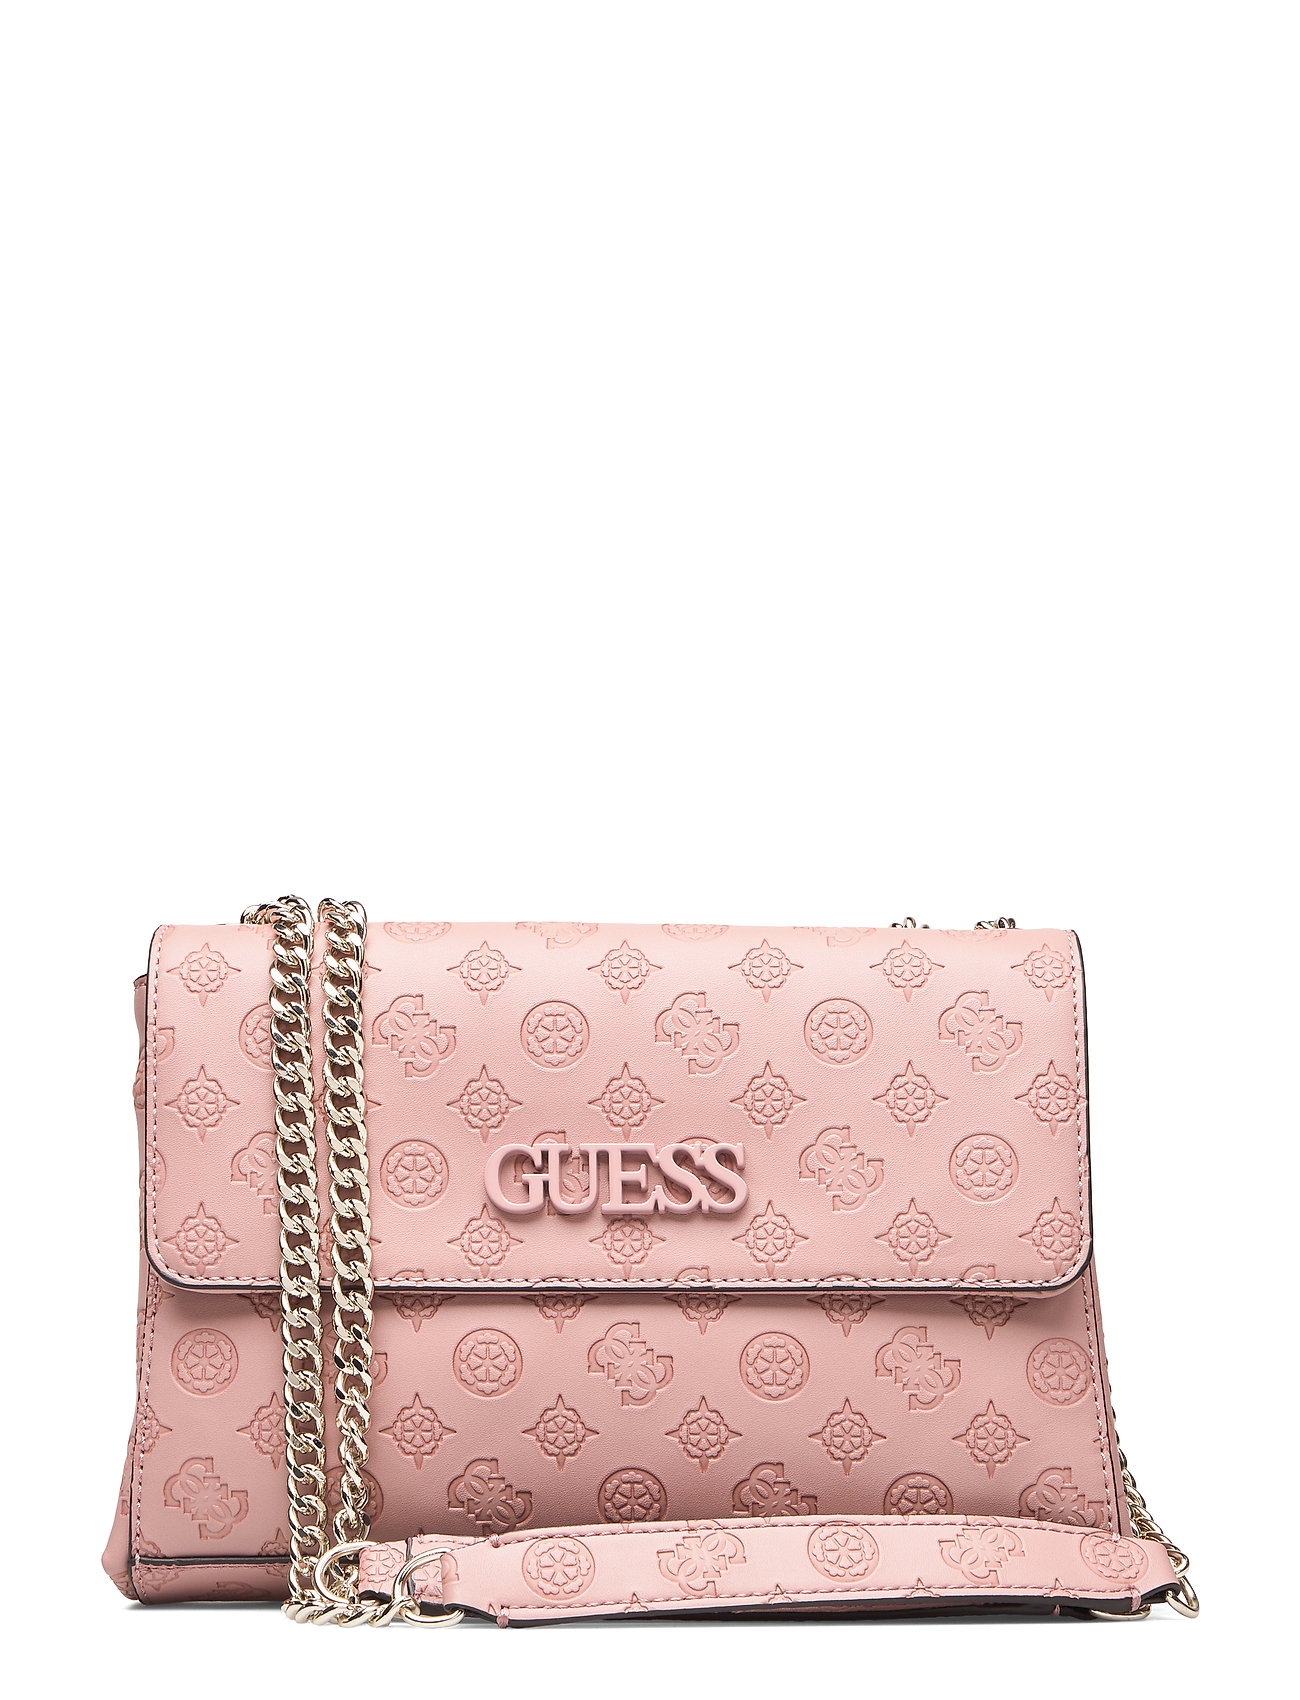 GUESS Janelle Convertible Xbody Flap Bags Small Shoulder Bags/crossbody Bags Pink GUESS